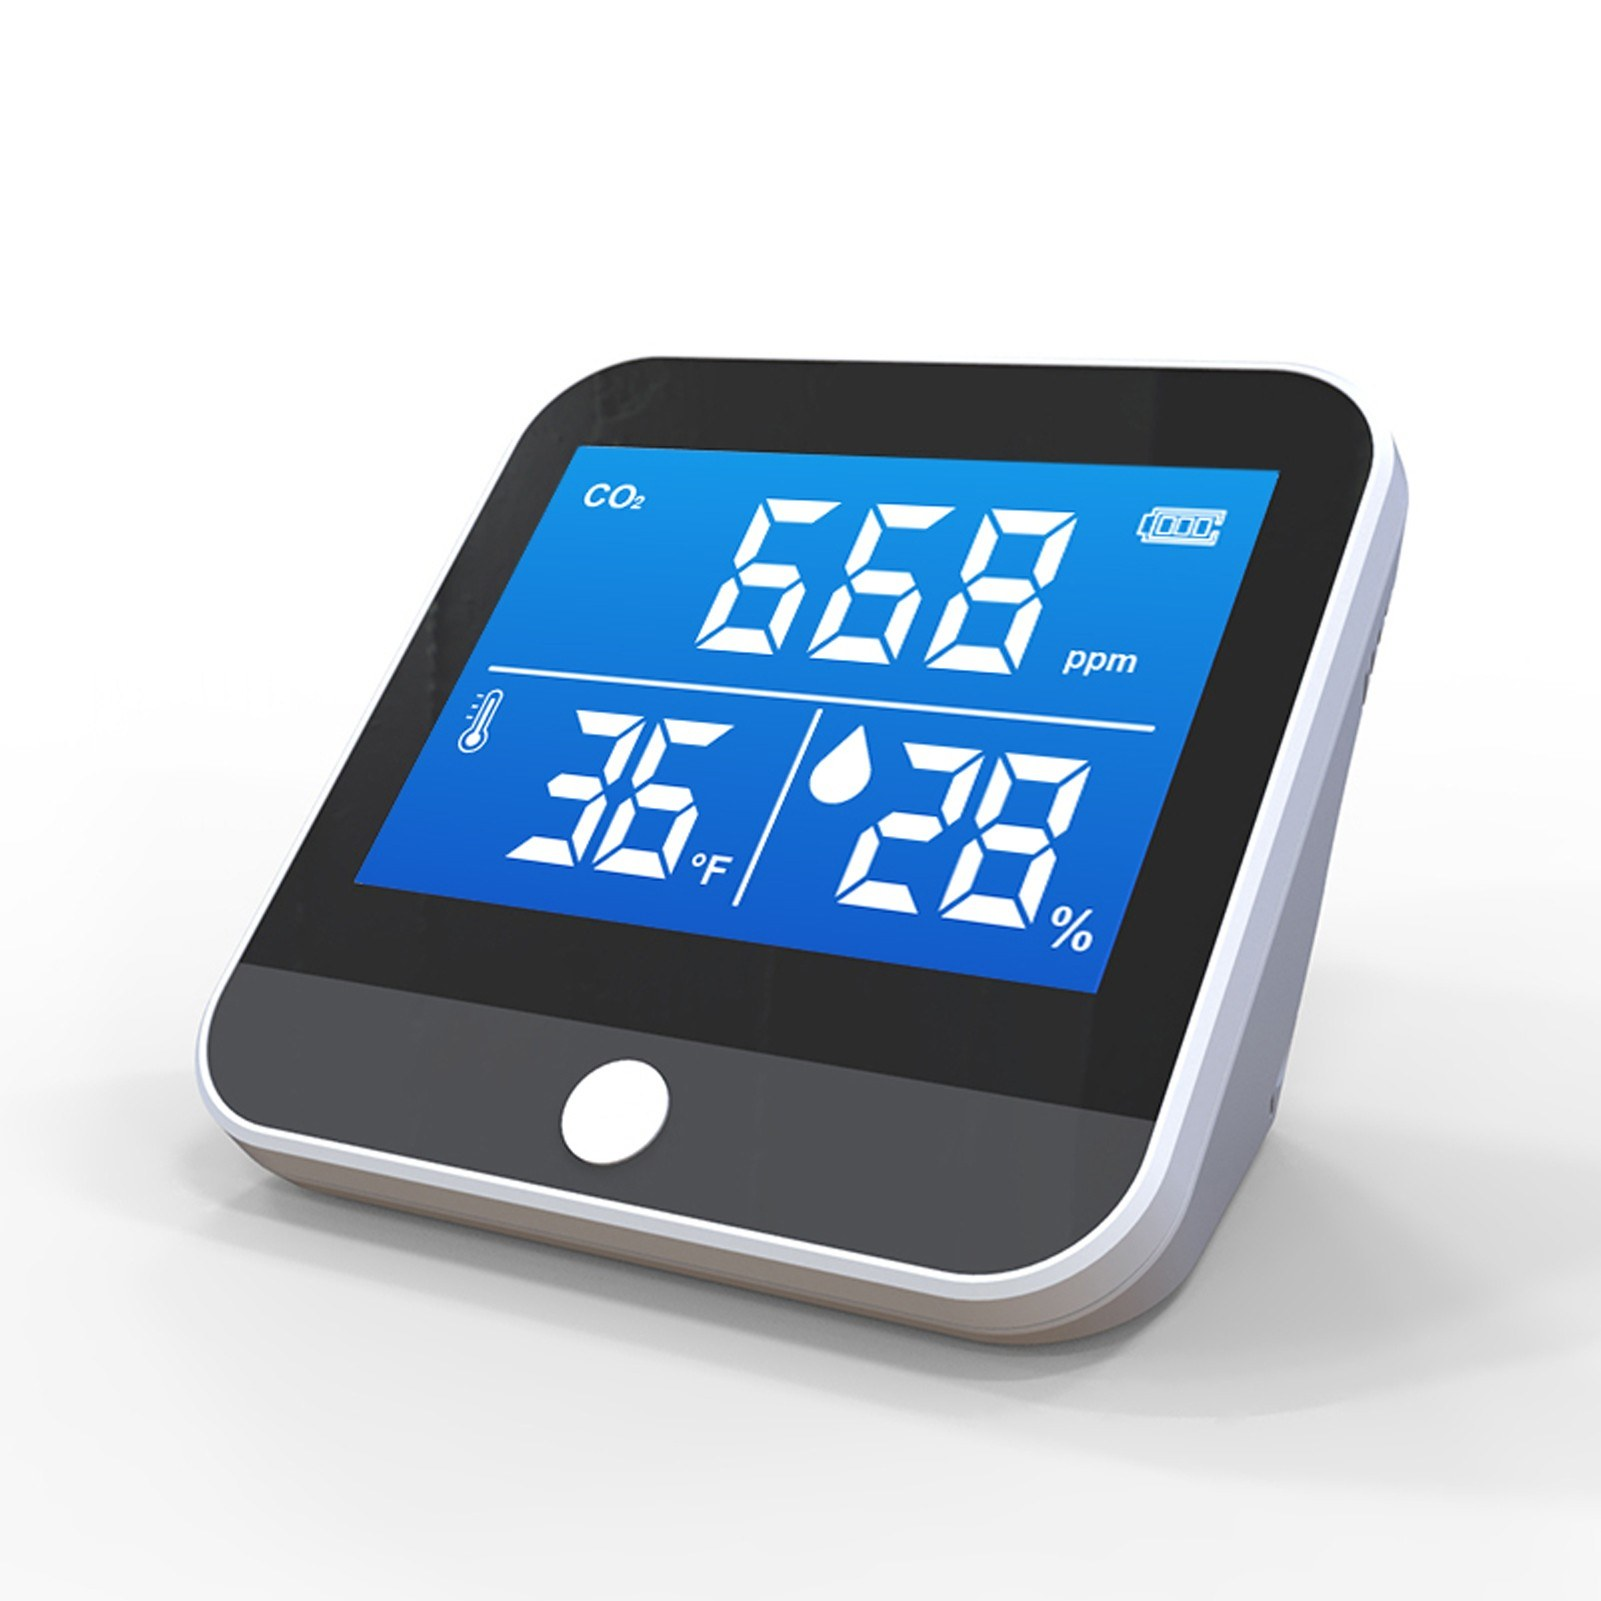 tomtop.com - 43% OFF DM306C Portable CO2 Temperature Humidity Monitor, Limited Offers $56.99